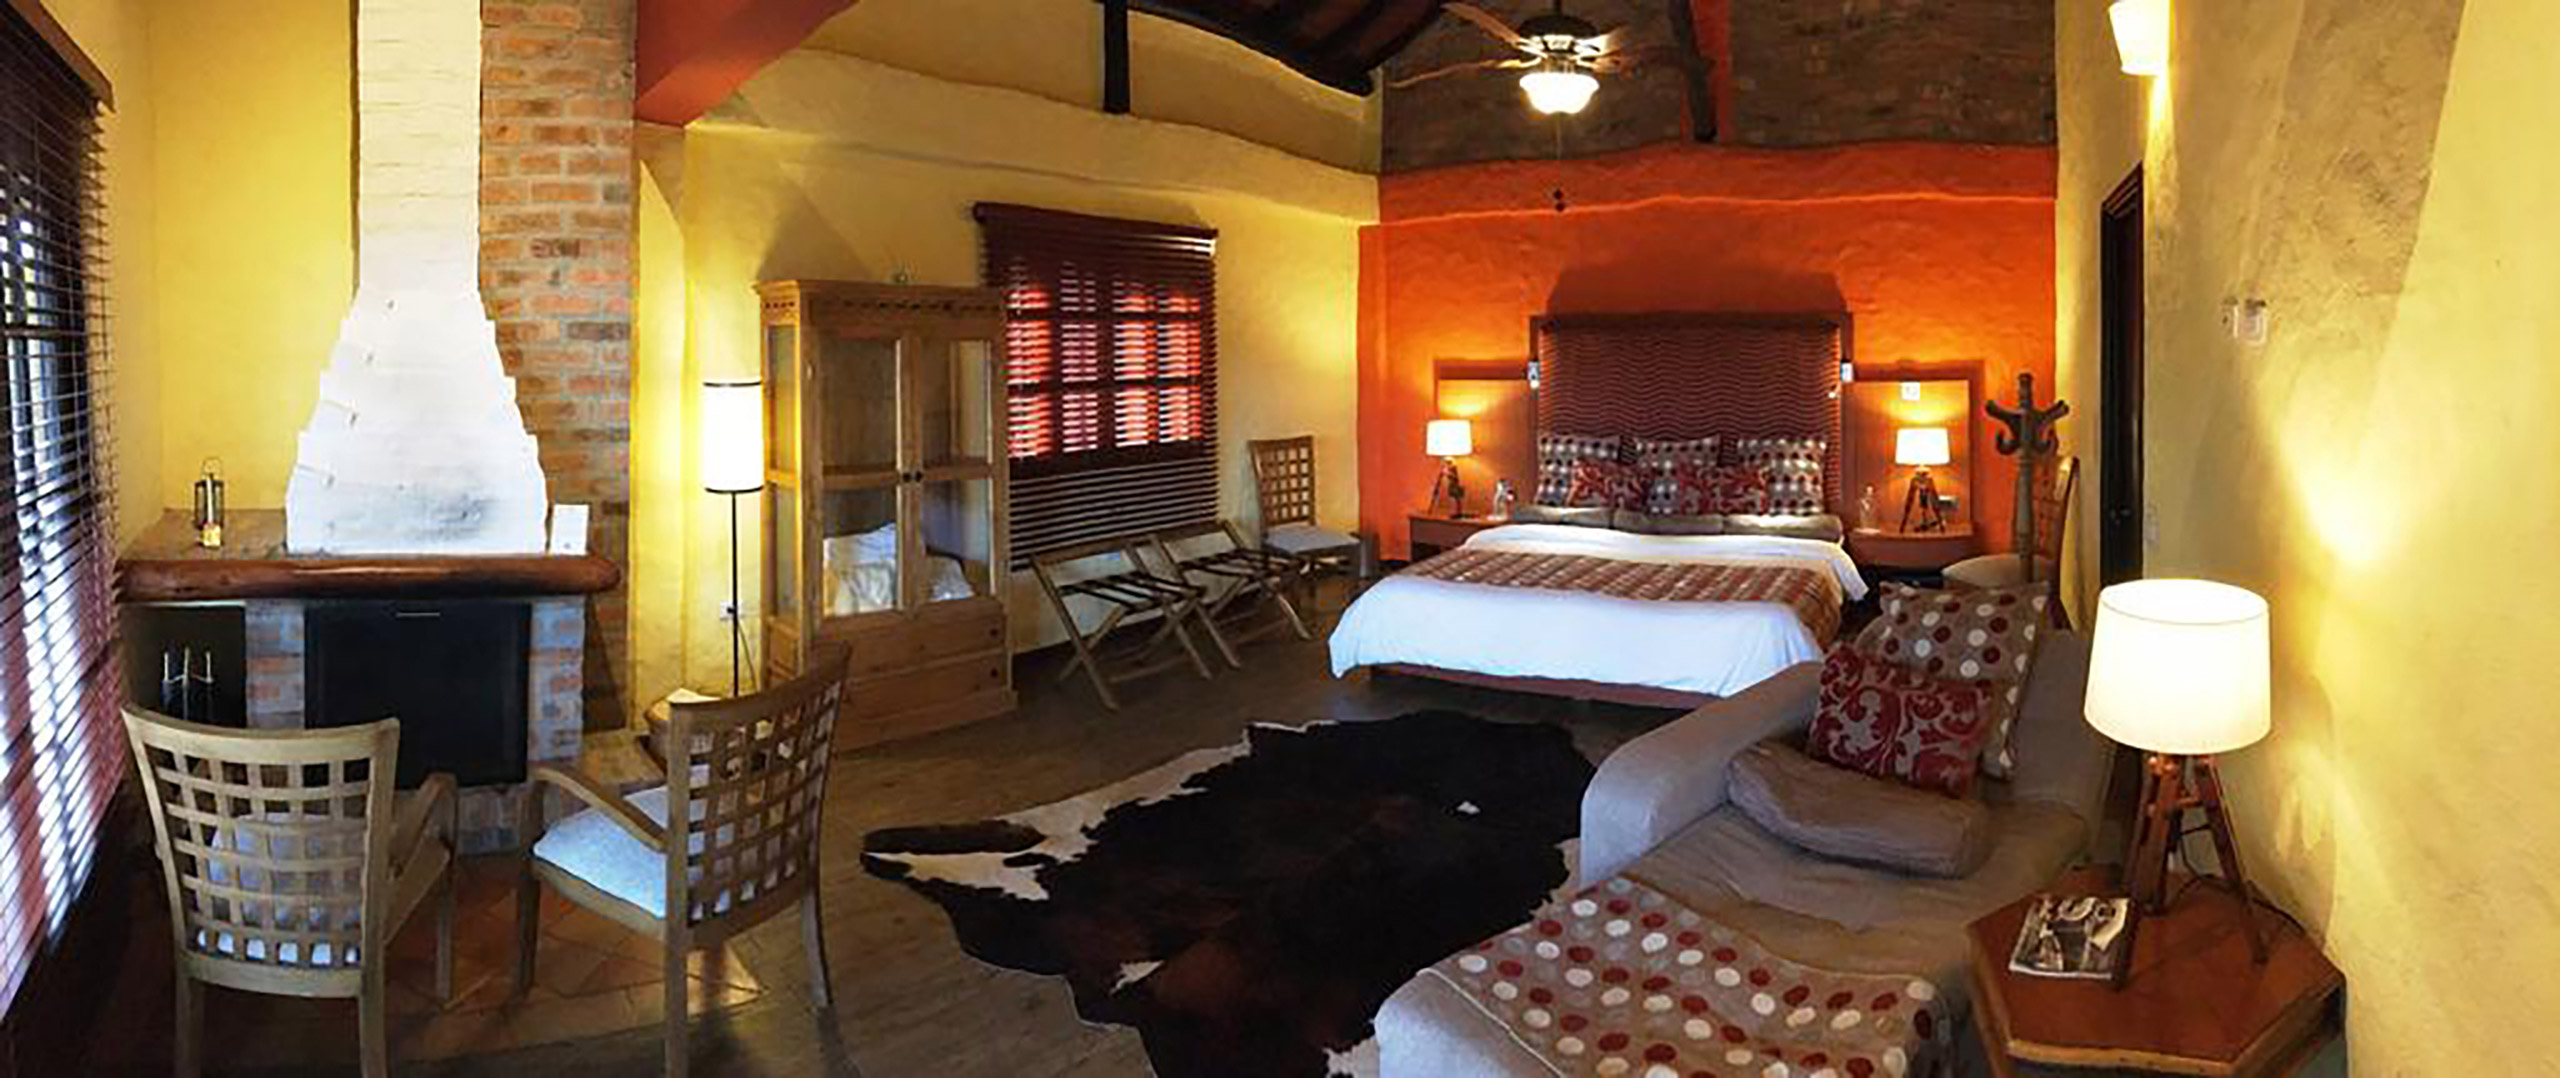 A guest room a hotel Monasterio with a brick fire place, wood armoire, an animal skinned rug, large bed, and a brown chair